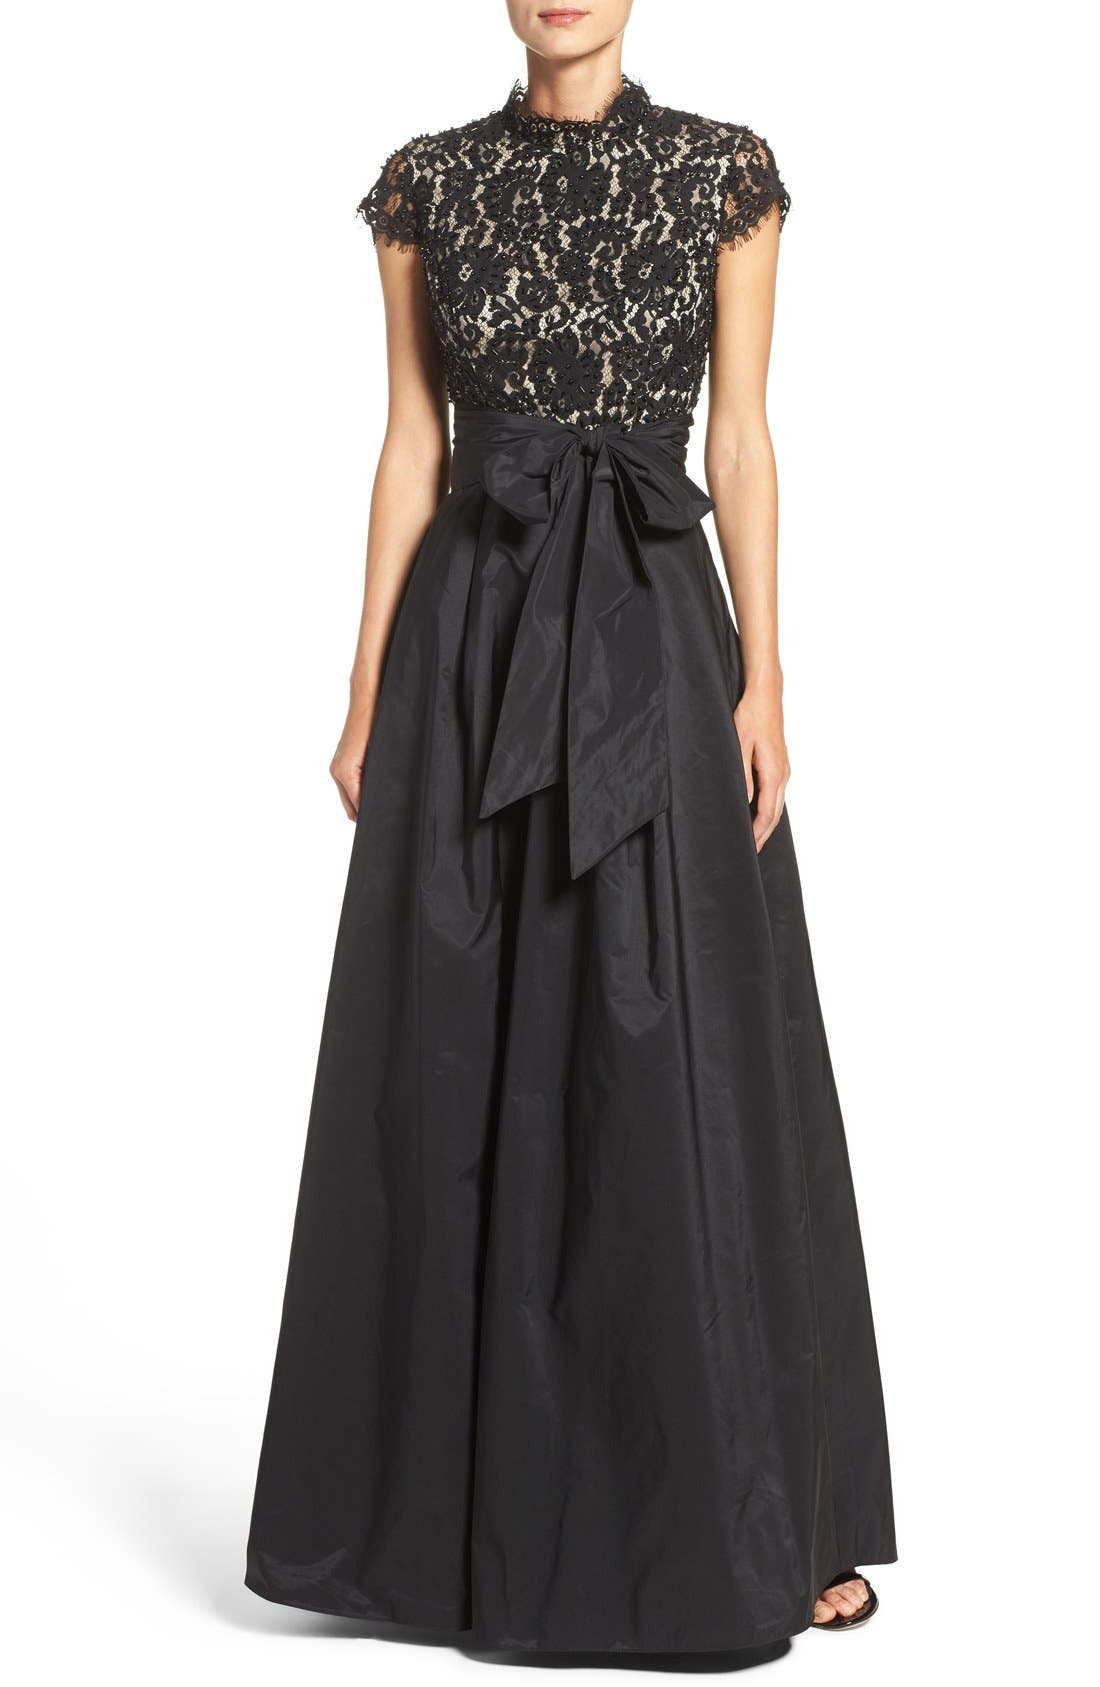 ELIZA J Beaded Bodice Ballgown, Main, color, BLACK